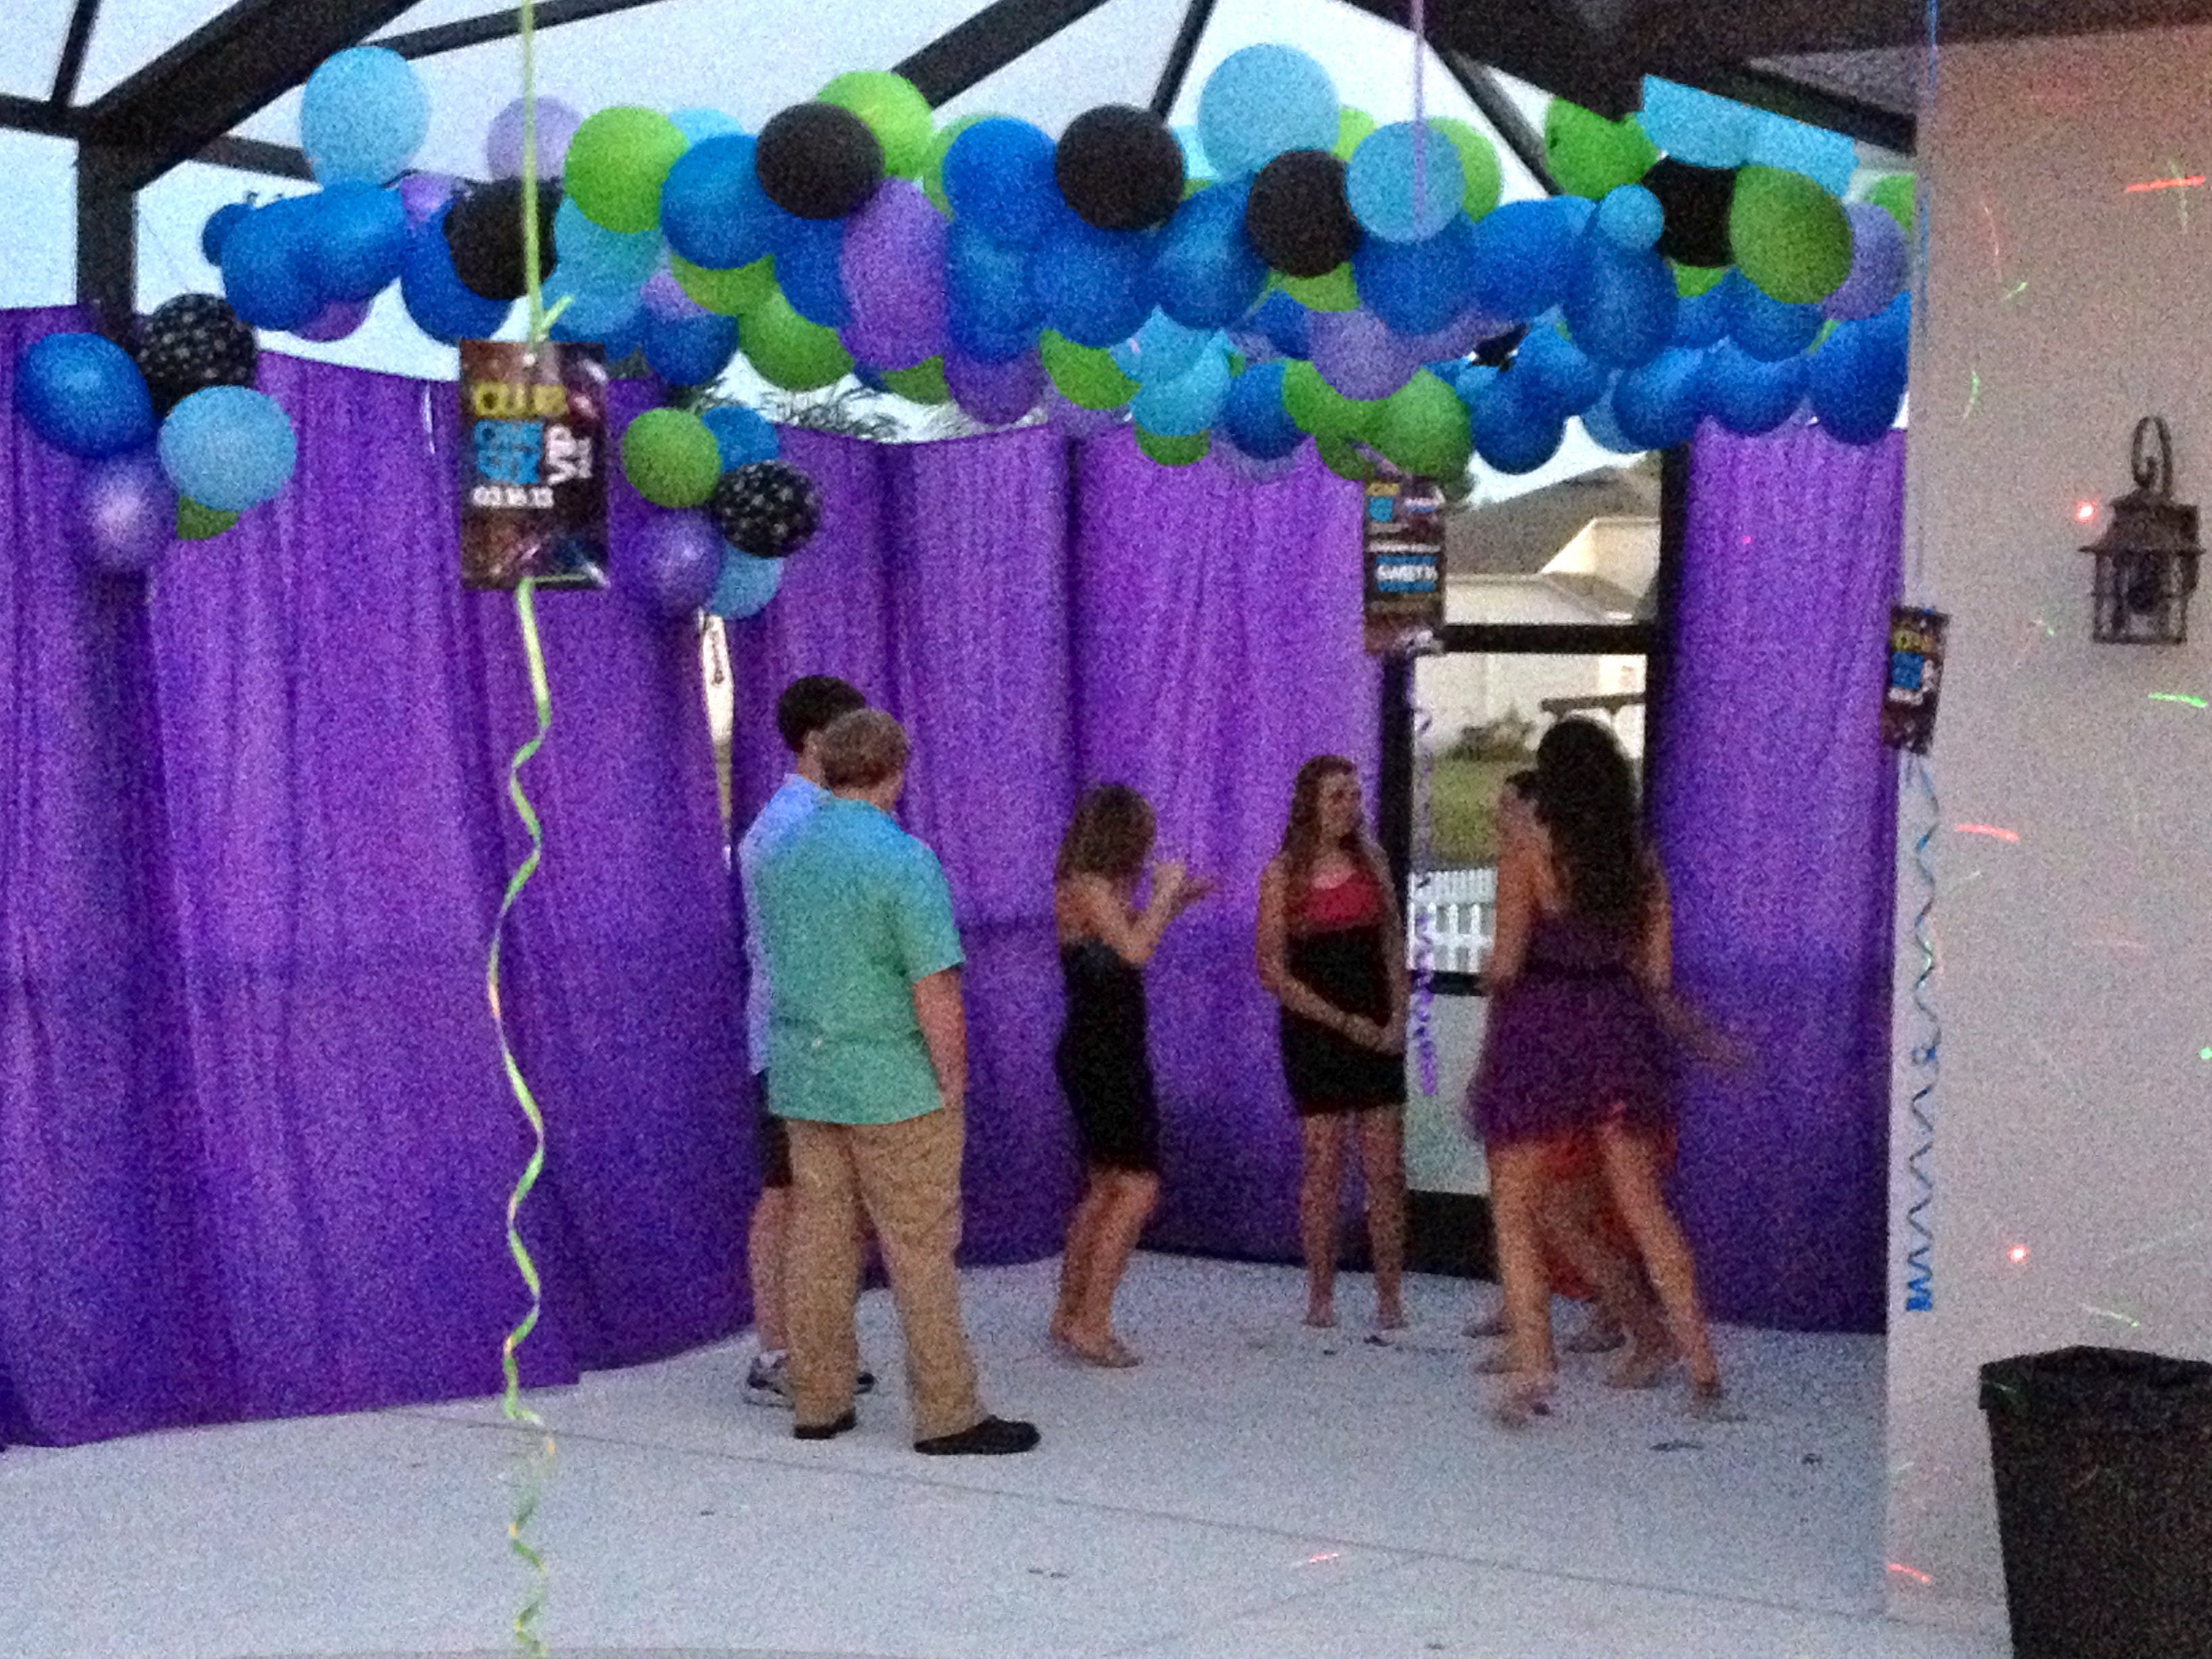 Dance Floor Decorations For A Club One Six Sweet Sixteen Outdoor Birthday Party Outdoors Birthday Party Sweet Sixteen Themes Outdoor Party Decorations